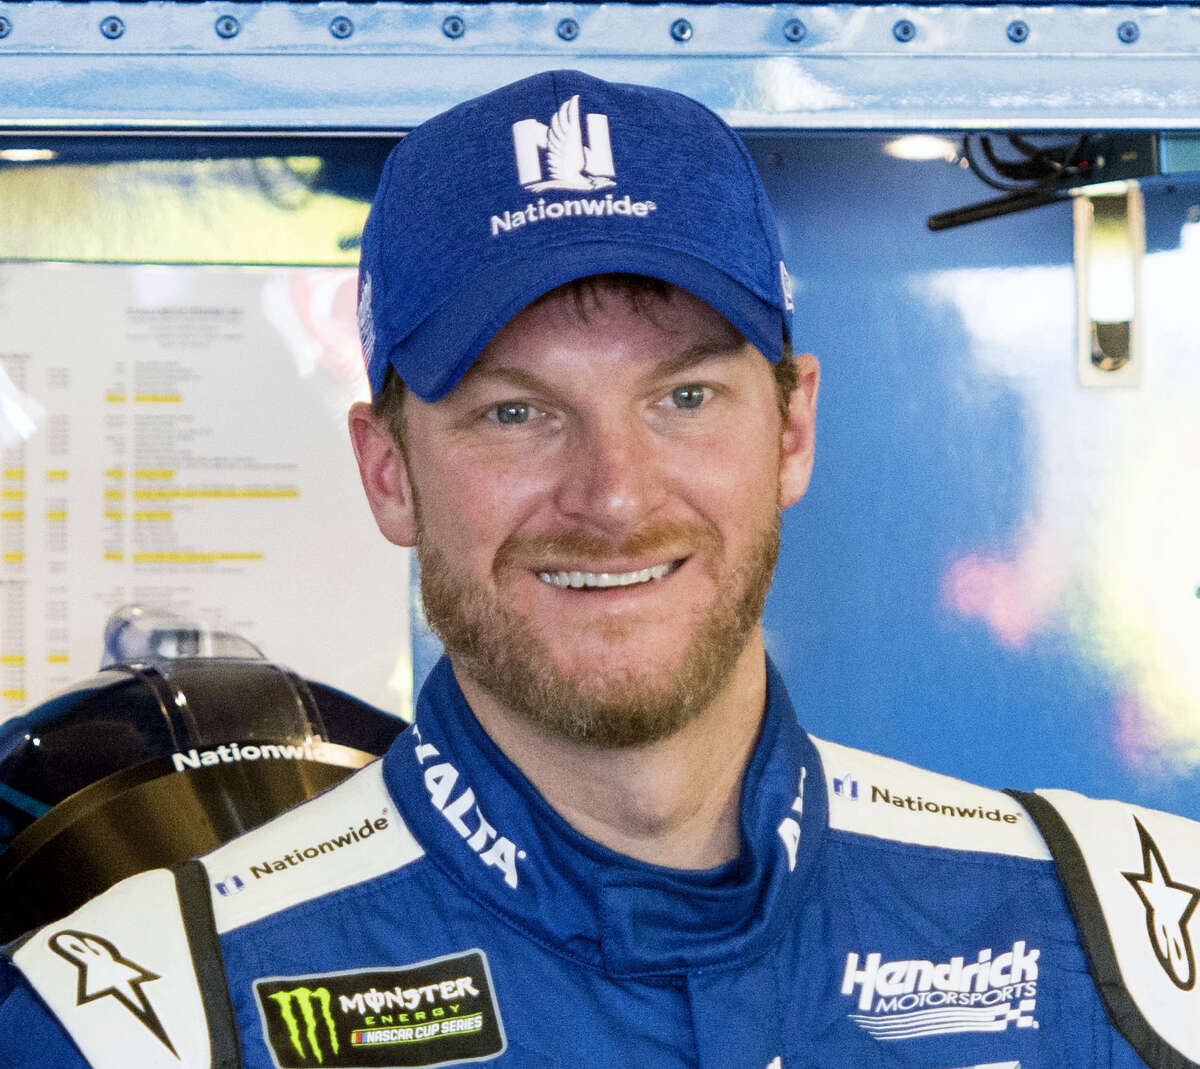 In this March 3, 2017 photo, Dale Earnhardt Jr. smiles in the garage during practice for the NASCAR Monster Energy Cup auto race at Atlanta Motor Speedway in Hampton, Ga. Hendrick Motorsports says Dale Earnhardt Jr. will retire at the end of this season.